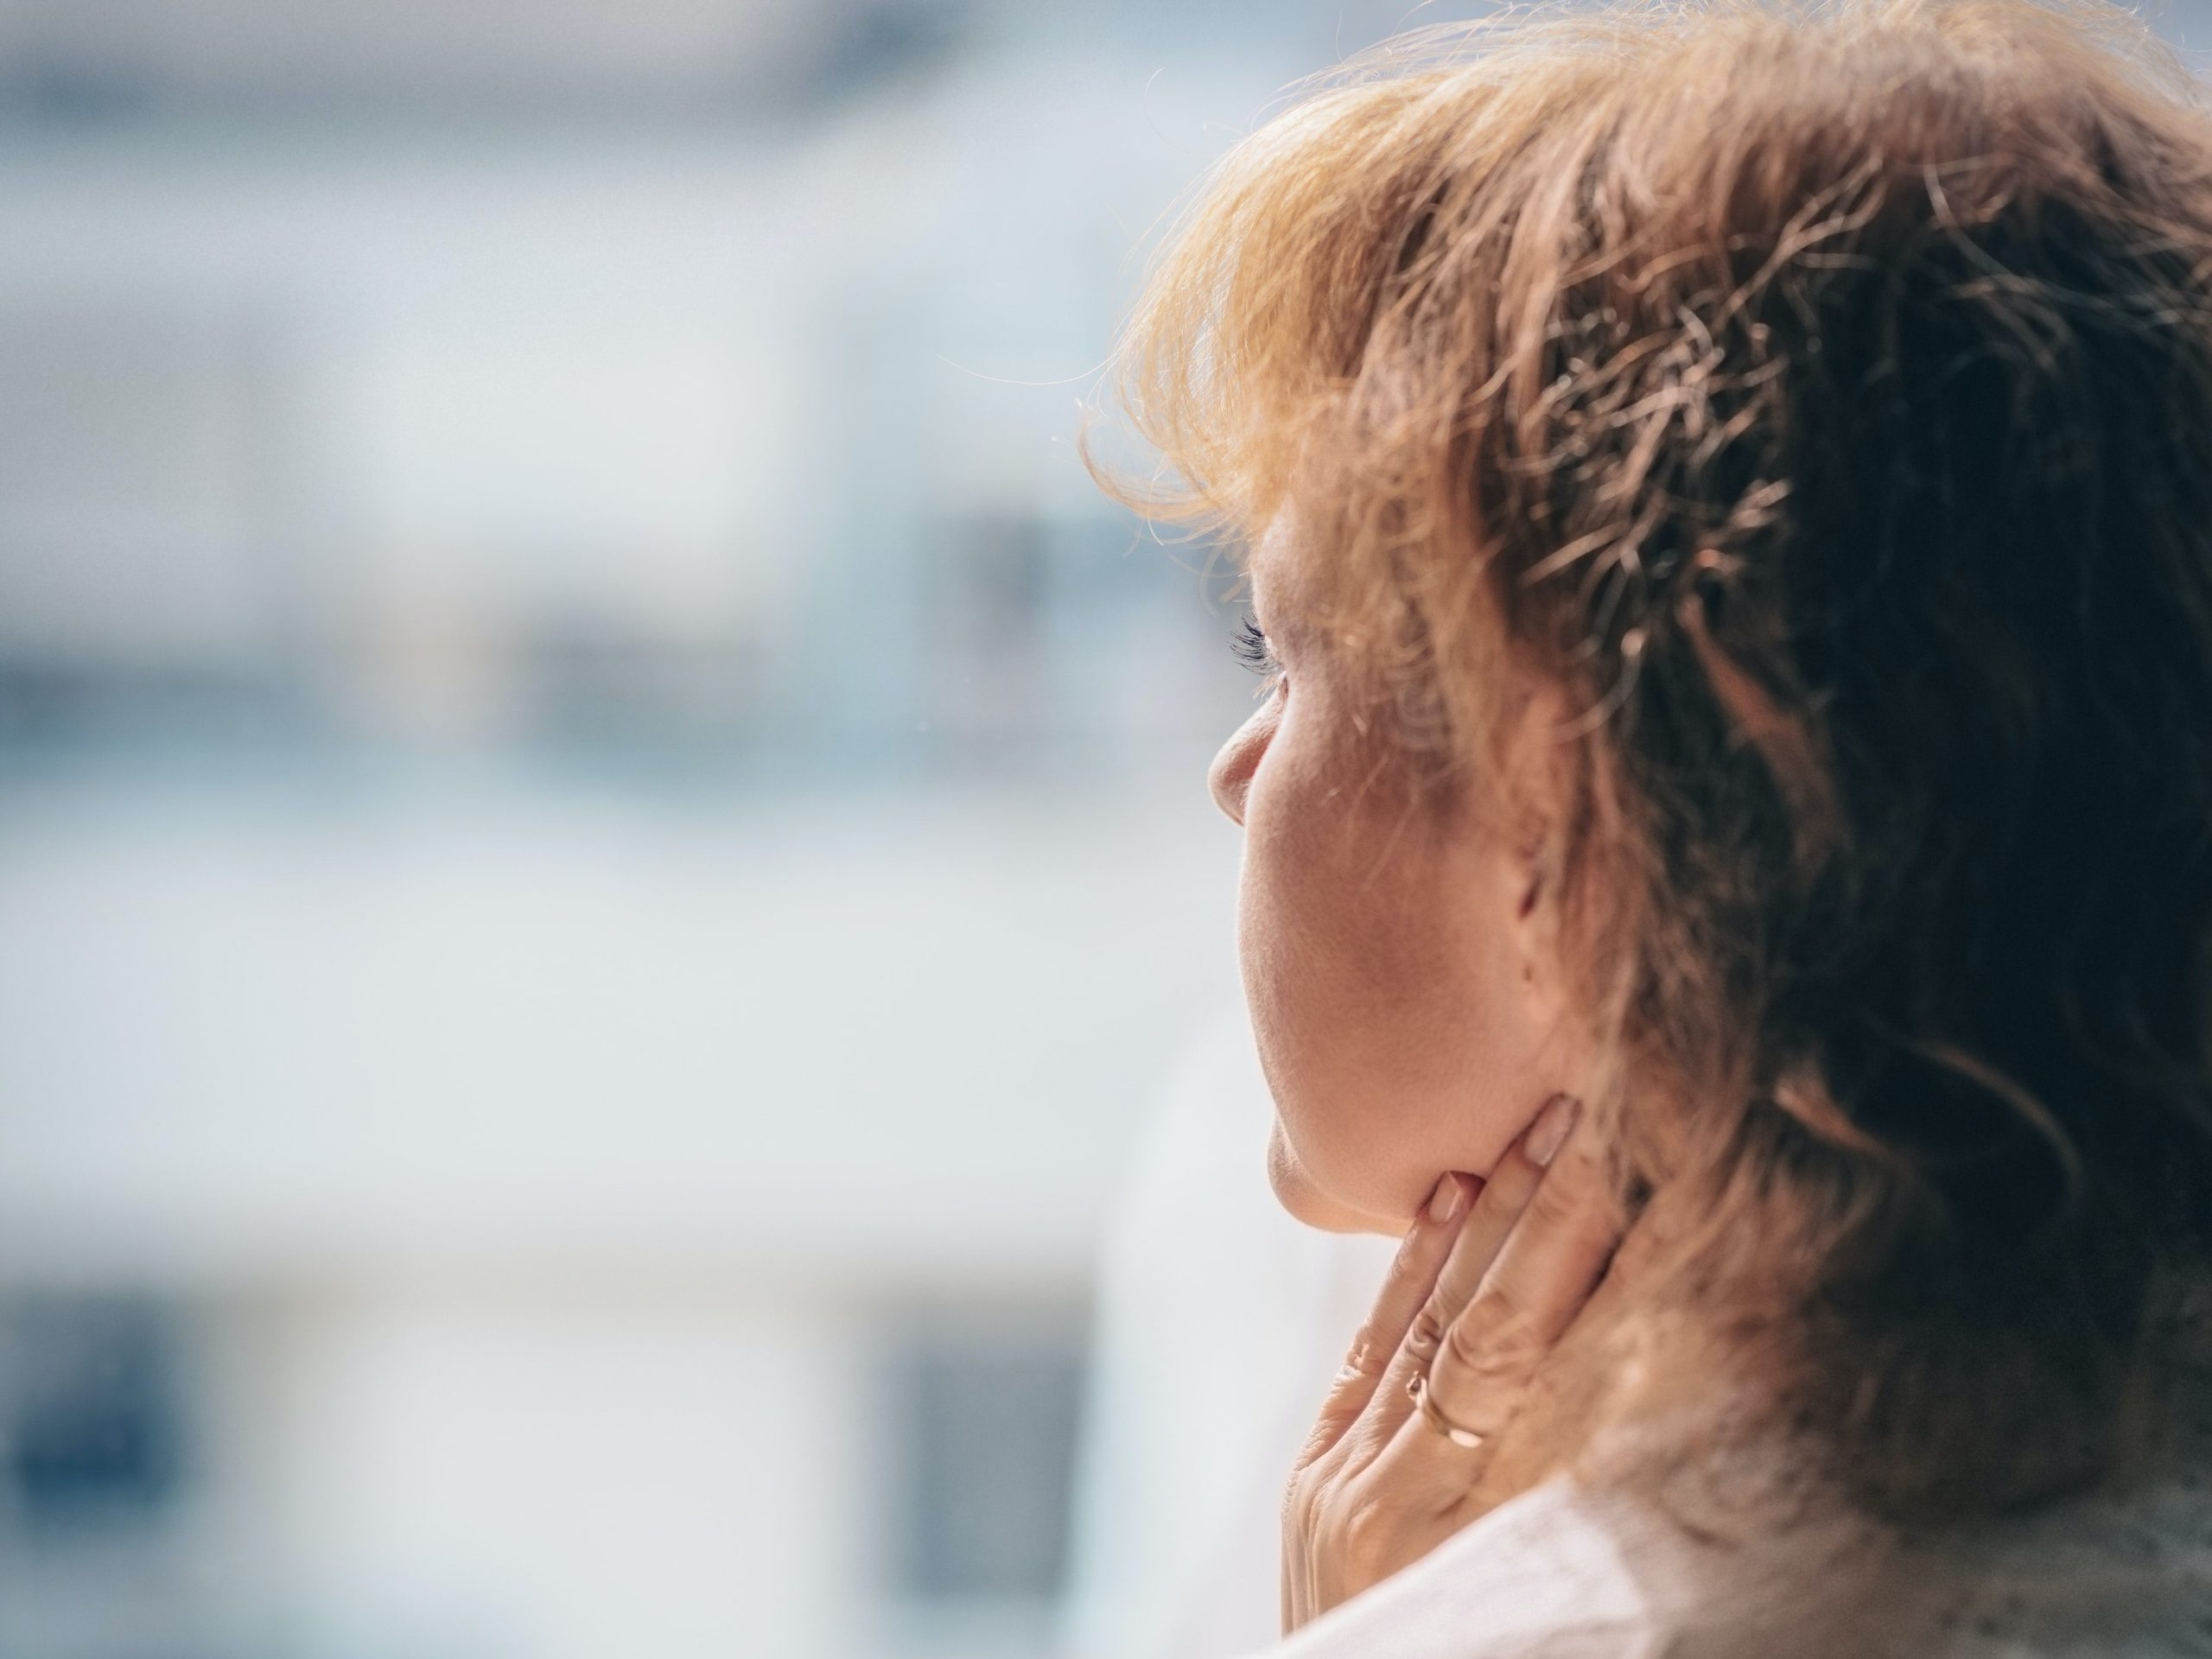 Woman staring into the distance with fingers on her neck